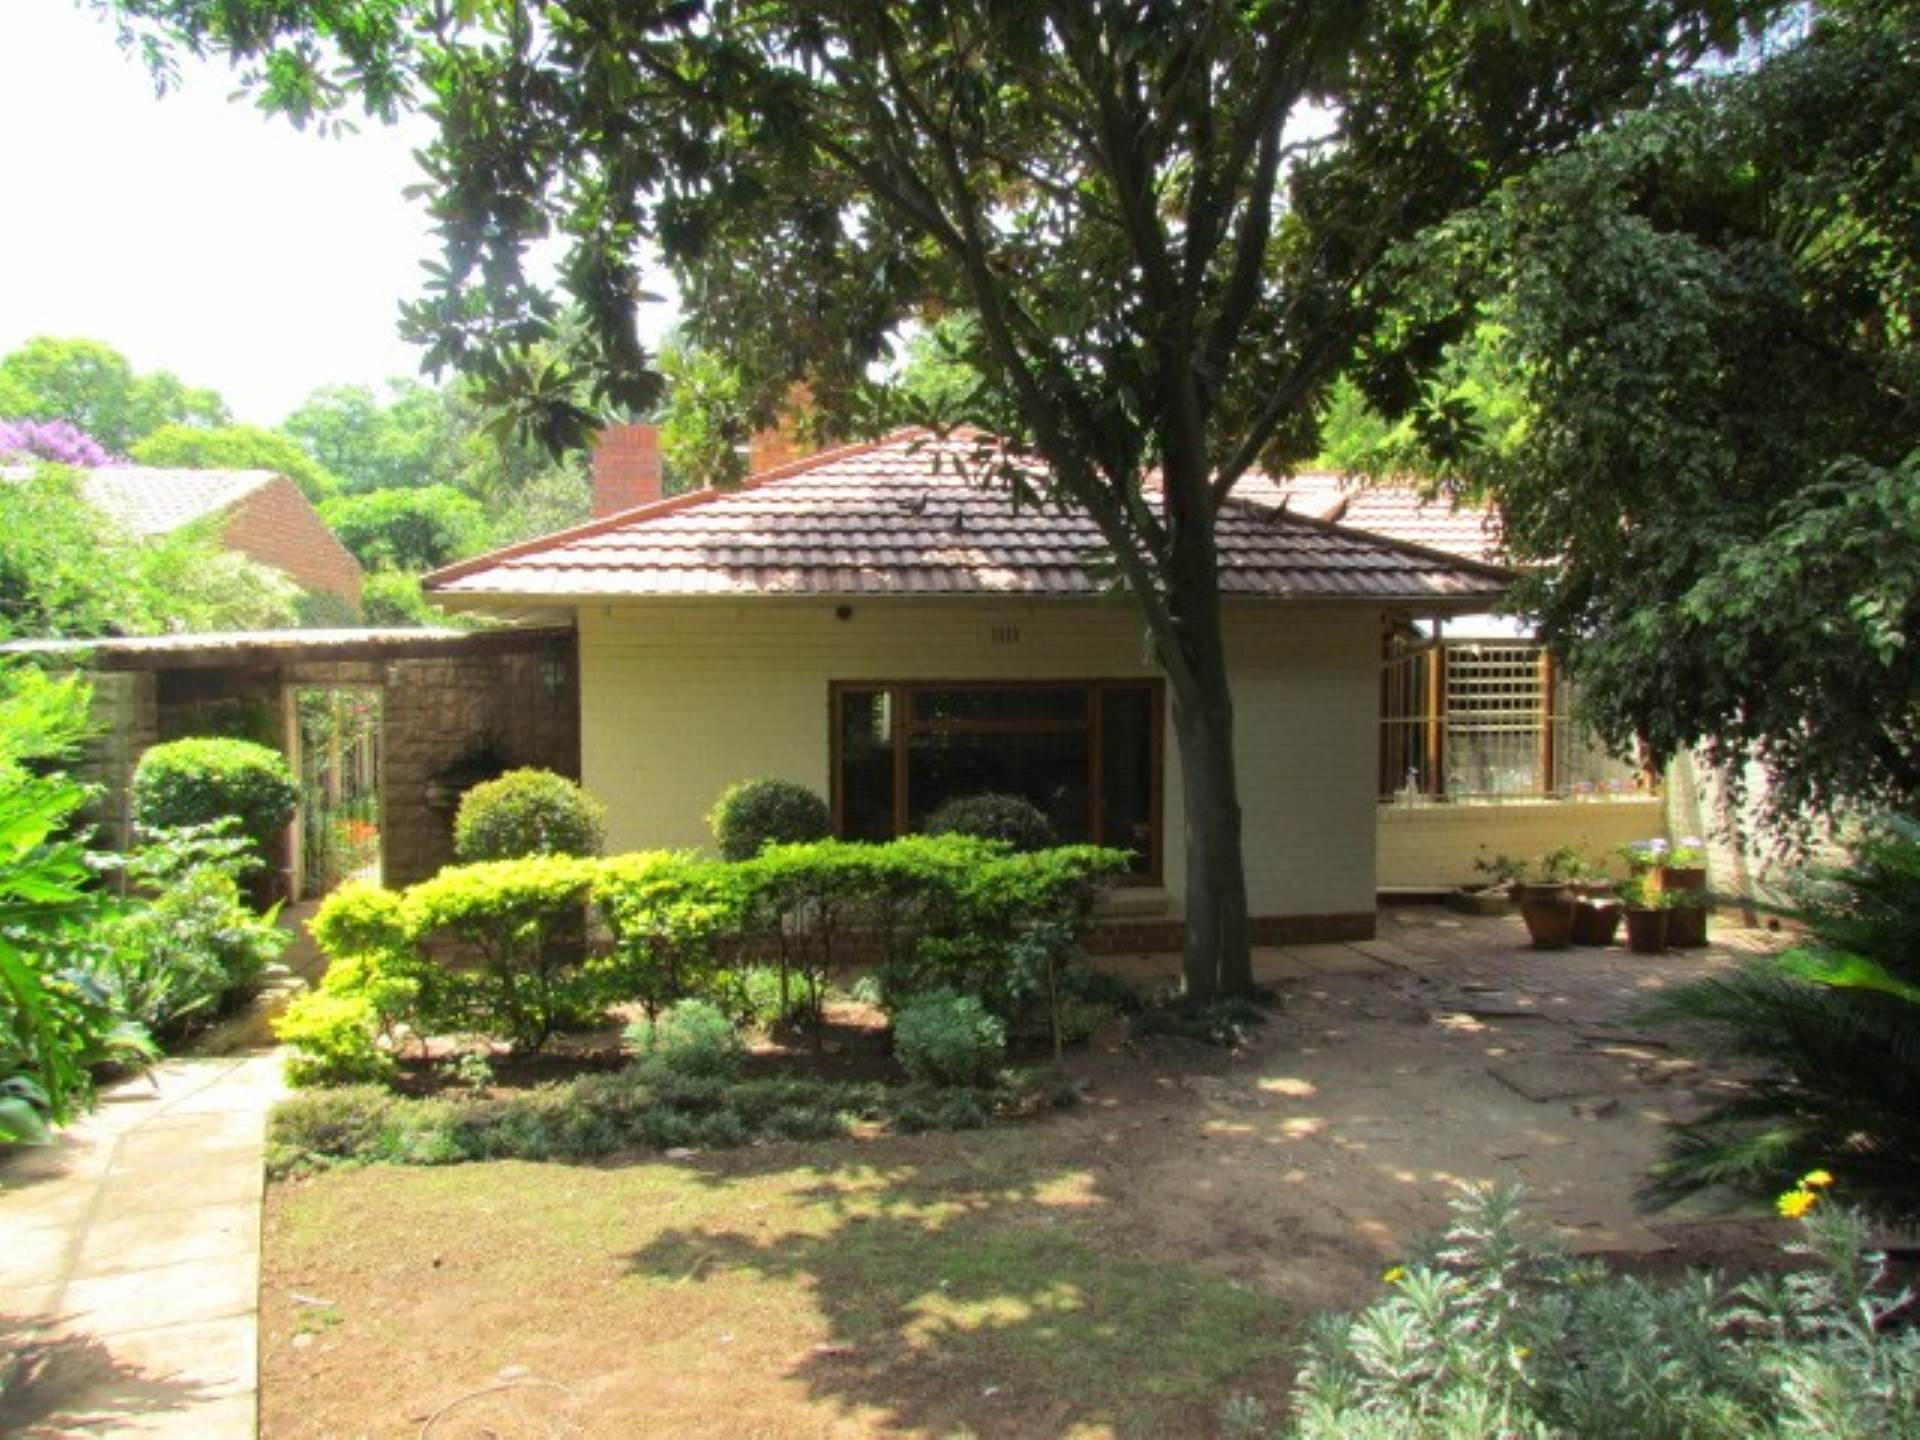 Pretoria, Nieuw Muckleneuk Property  | Houses For Sale Nieuw Muckleneuk, NIEUW MUCKLENEUK, House 3 bedrooms property for sale Price:3,495,000